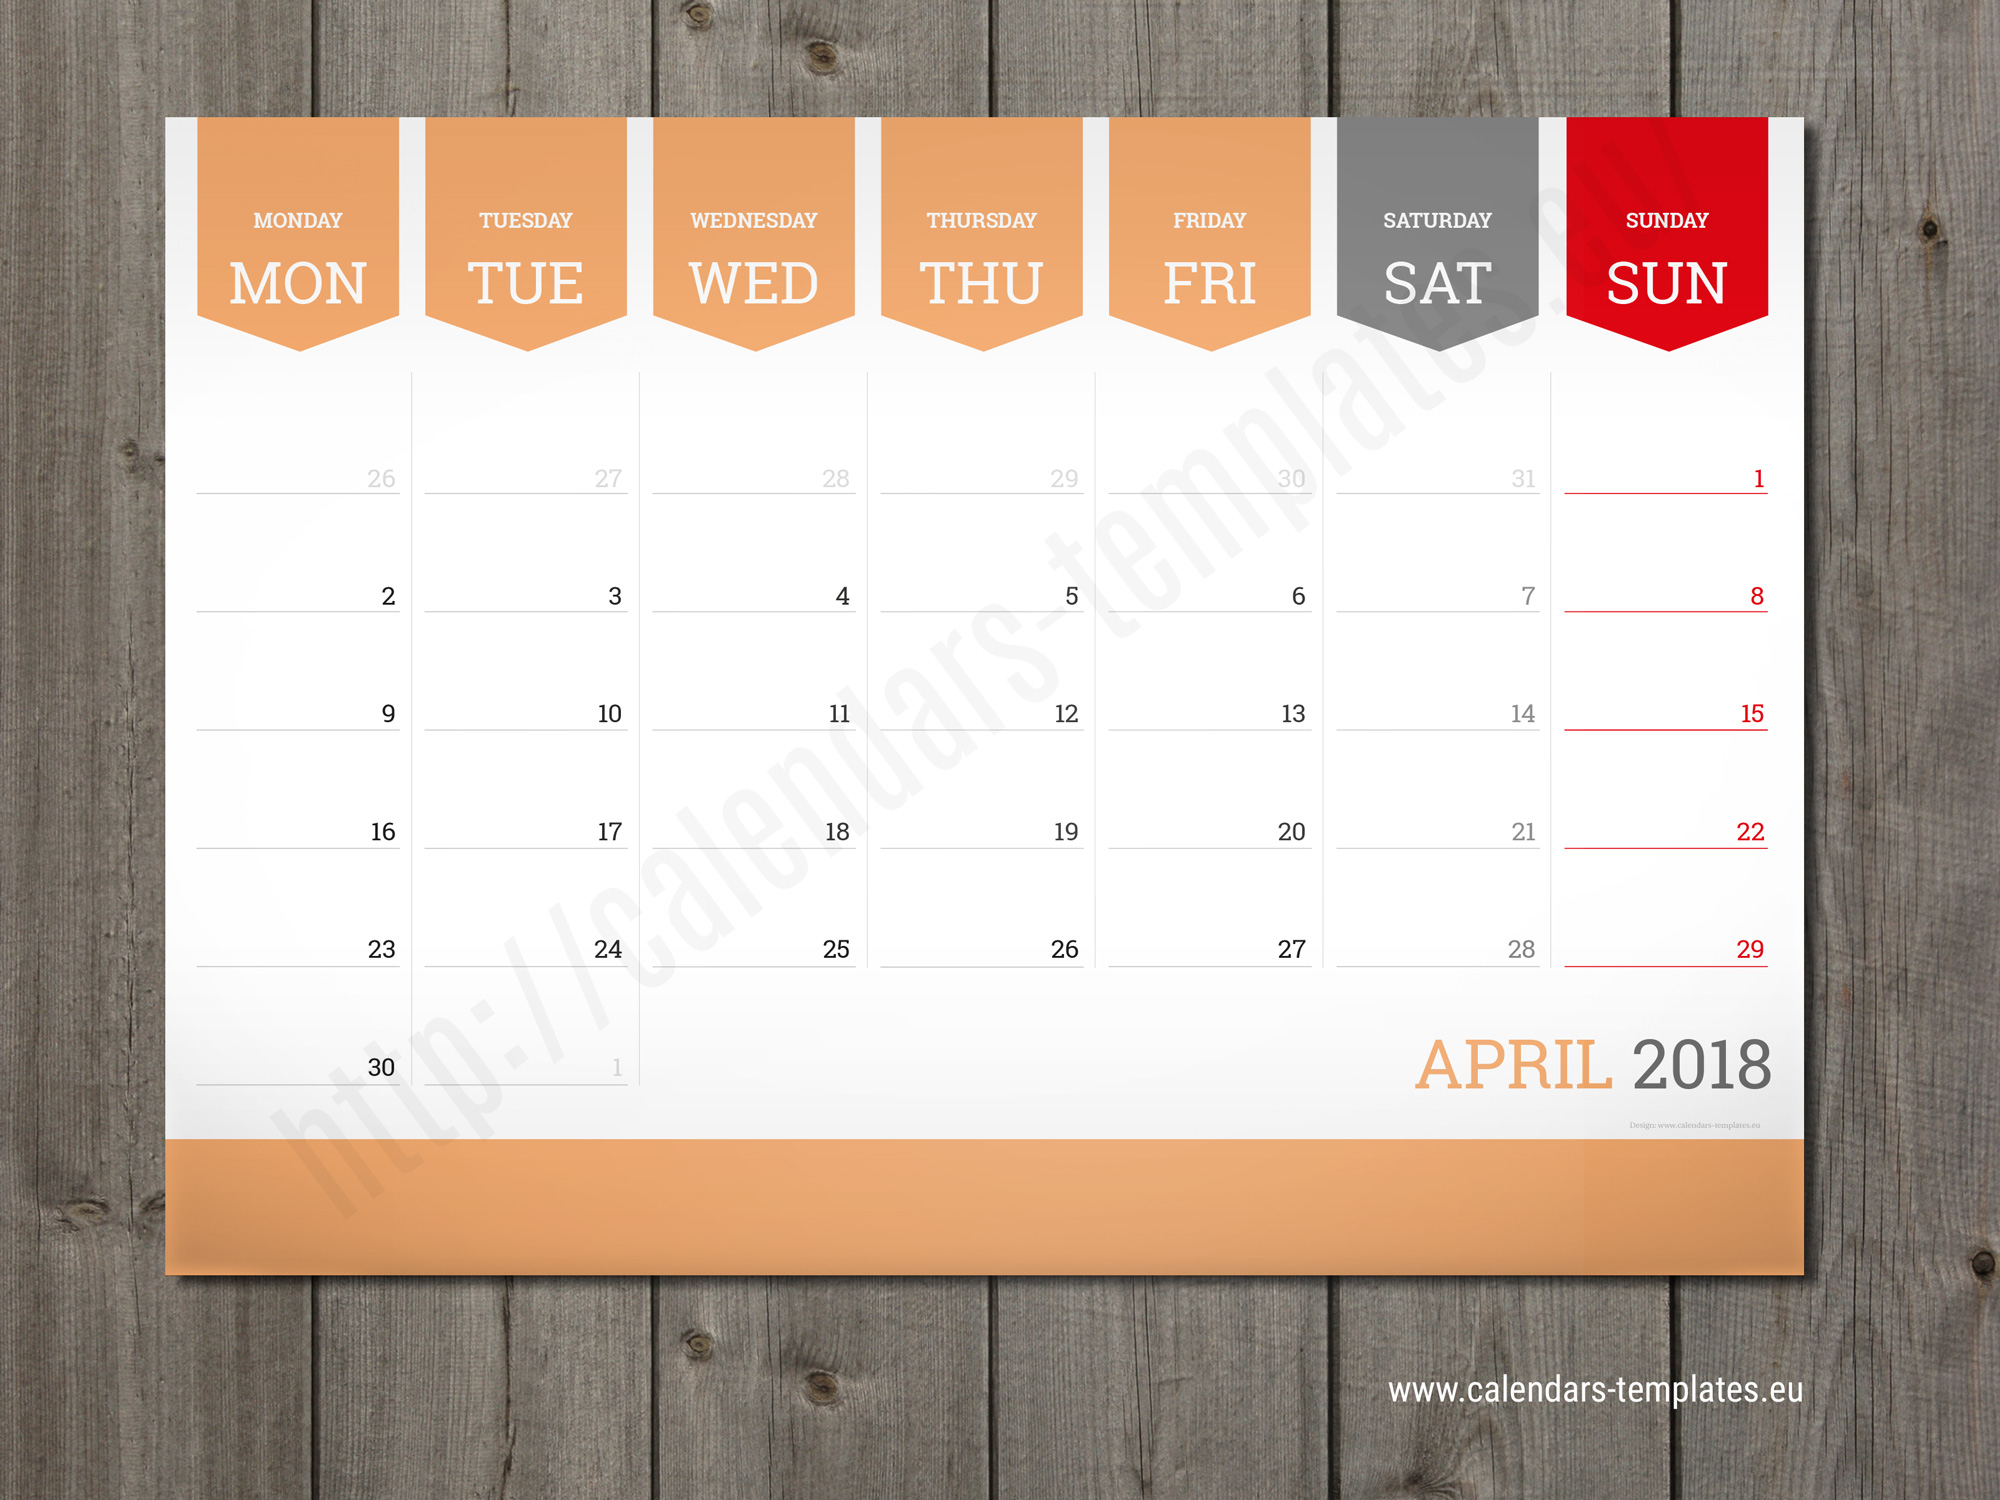 Calendar Monthly Planner : Monthly calendar planner wall or table pad